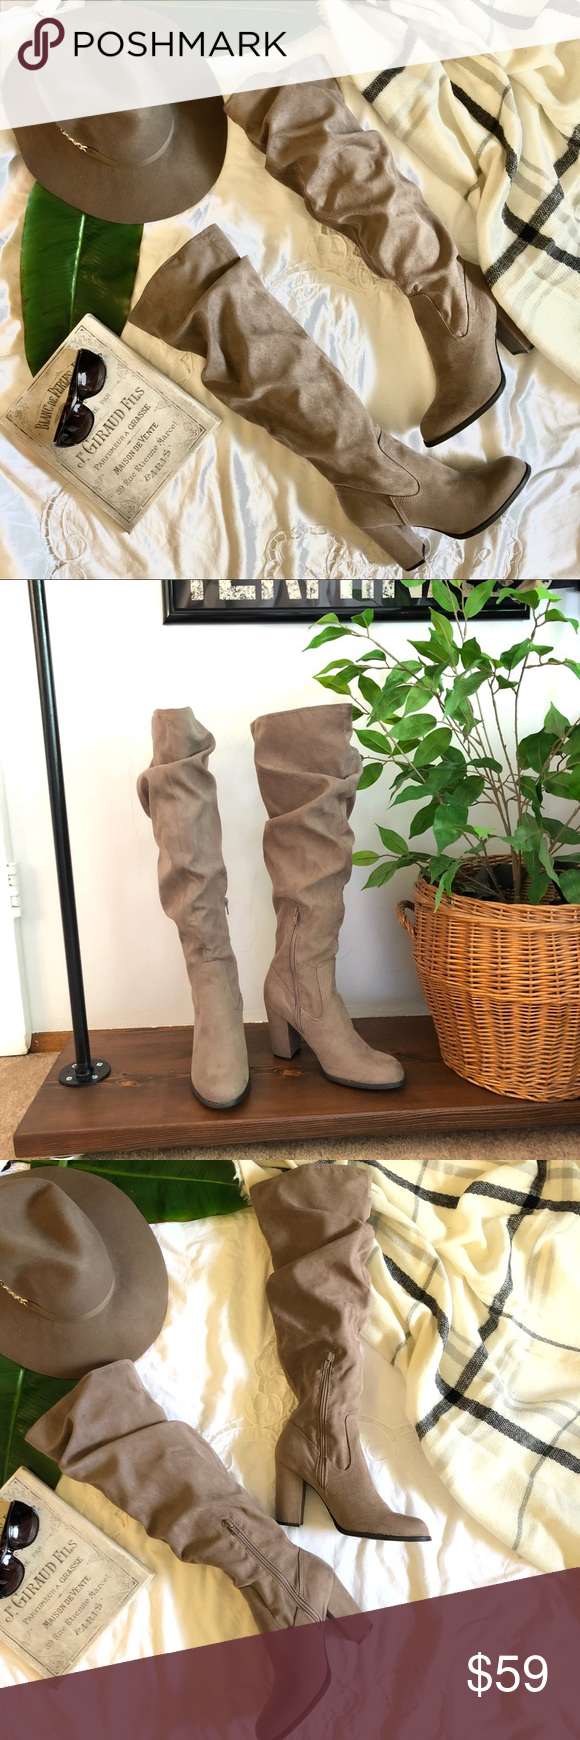 704d41c6381 Madden girl faux suede slouchy boot. Size 9. NWOT. Madden girl ...